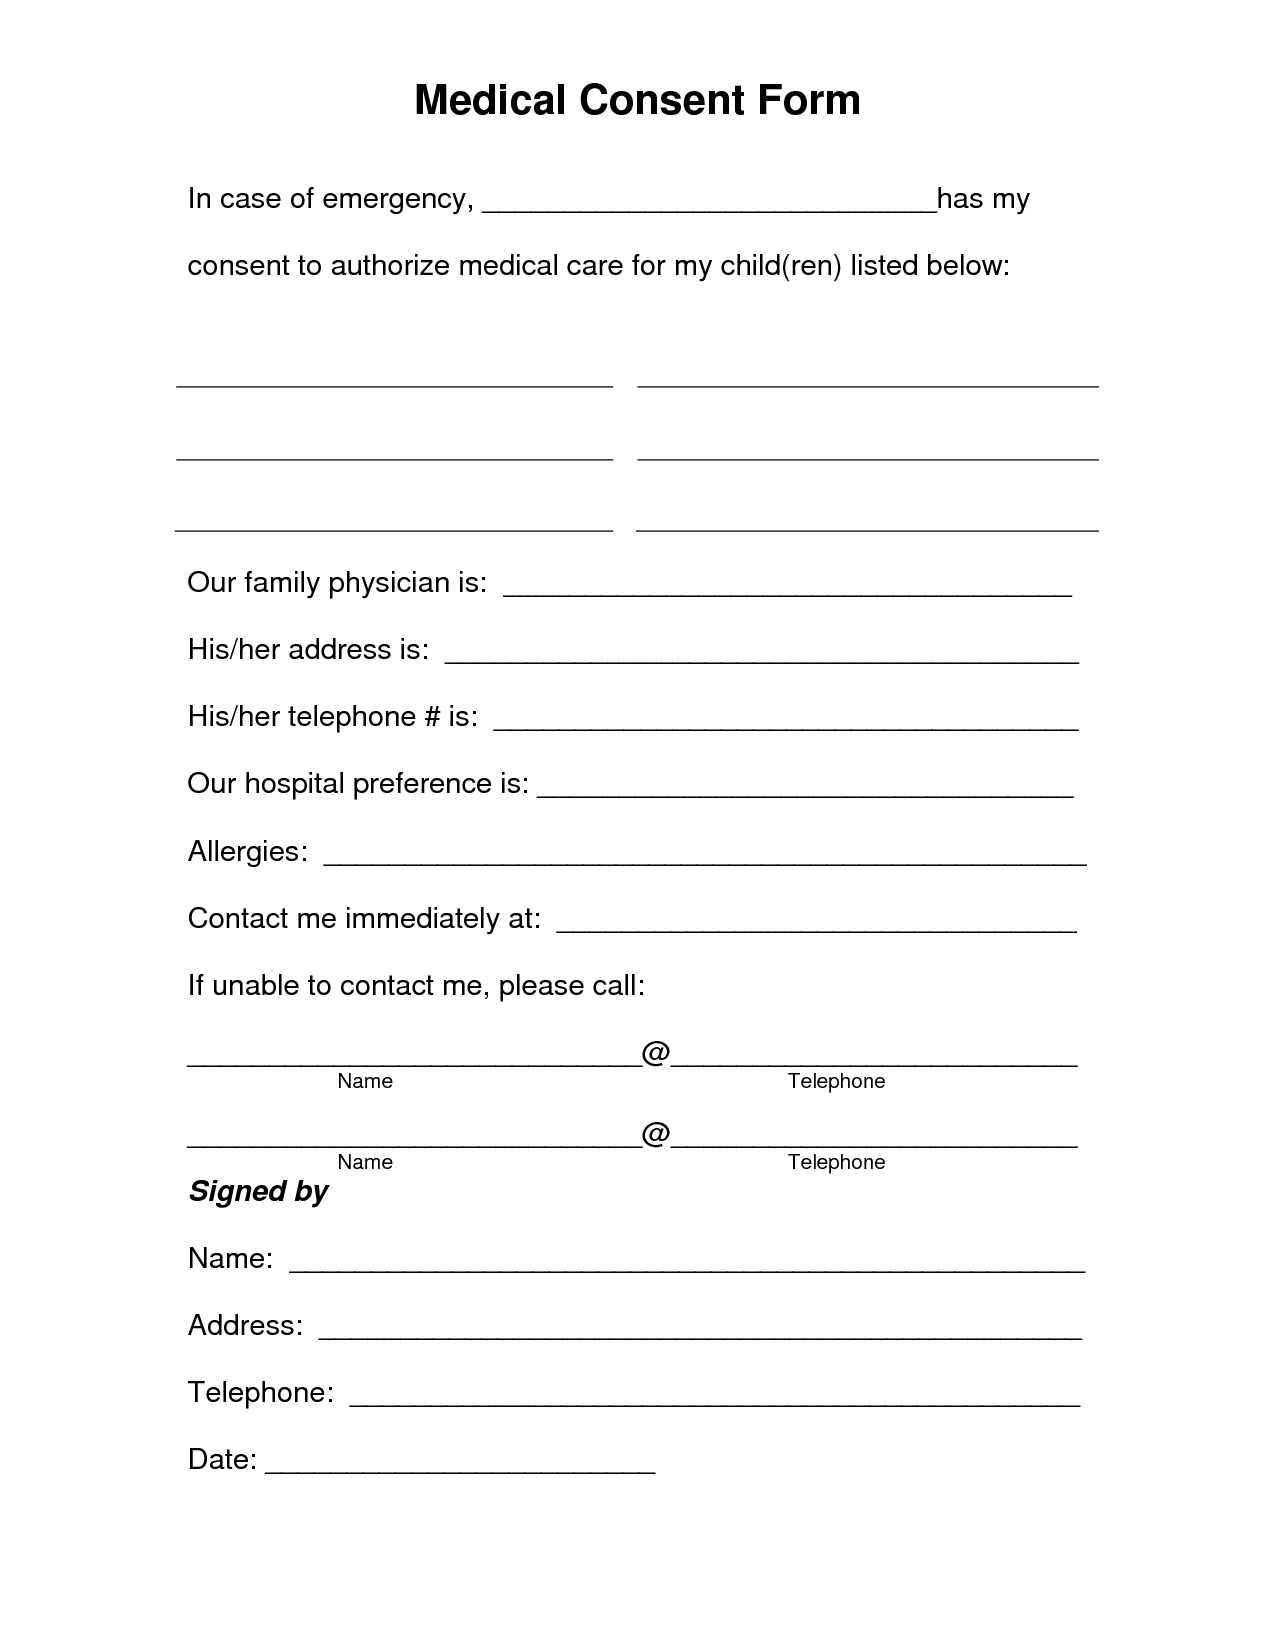 Luscious image regarding free printable medical consent form for minor child